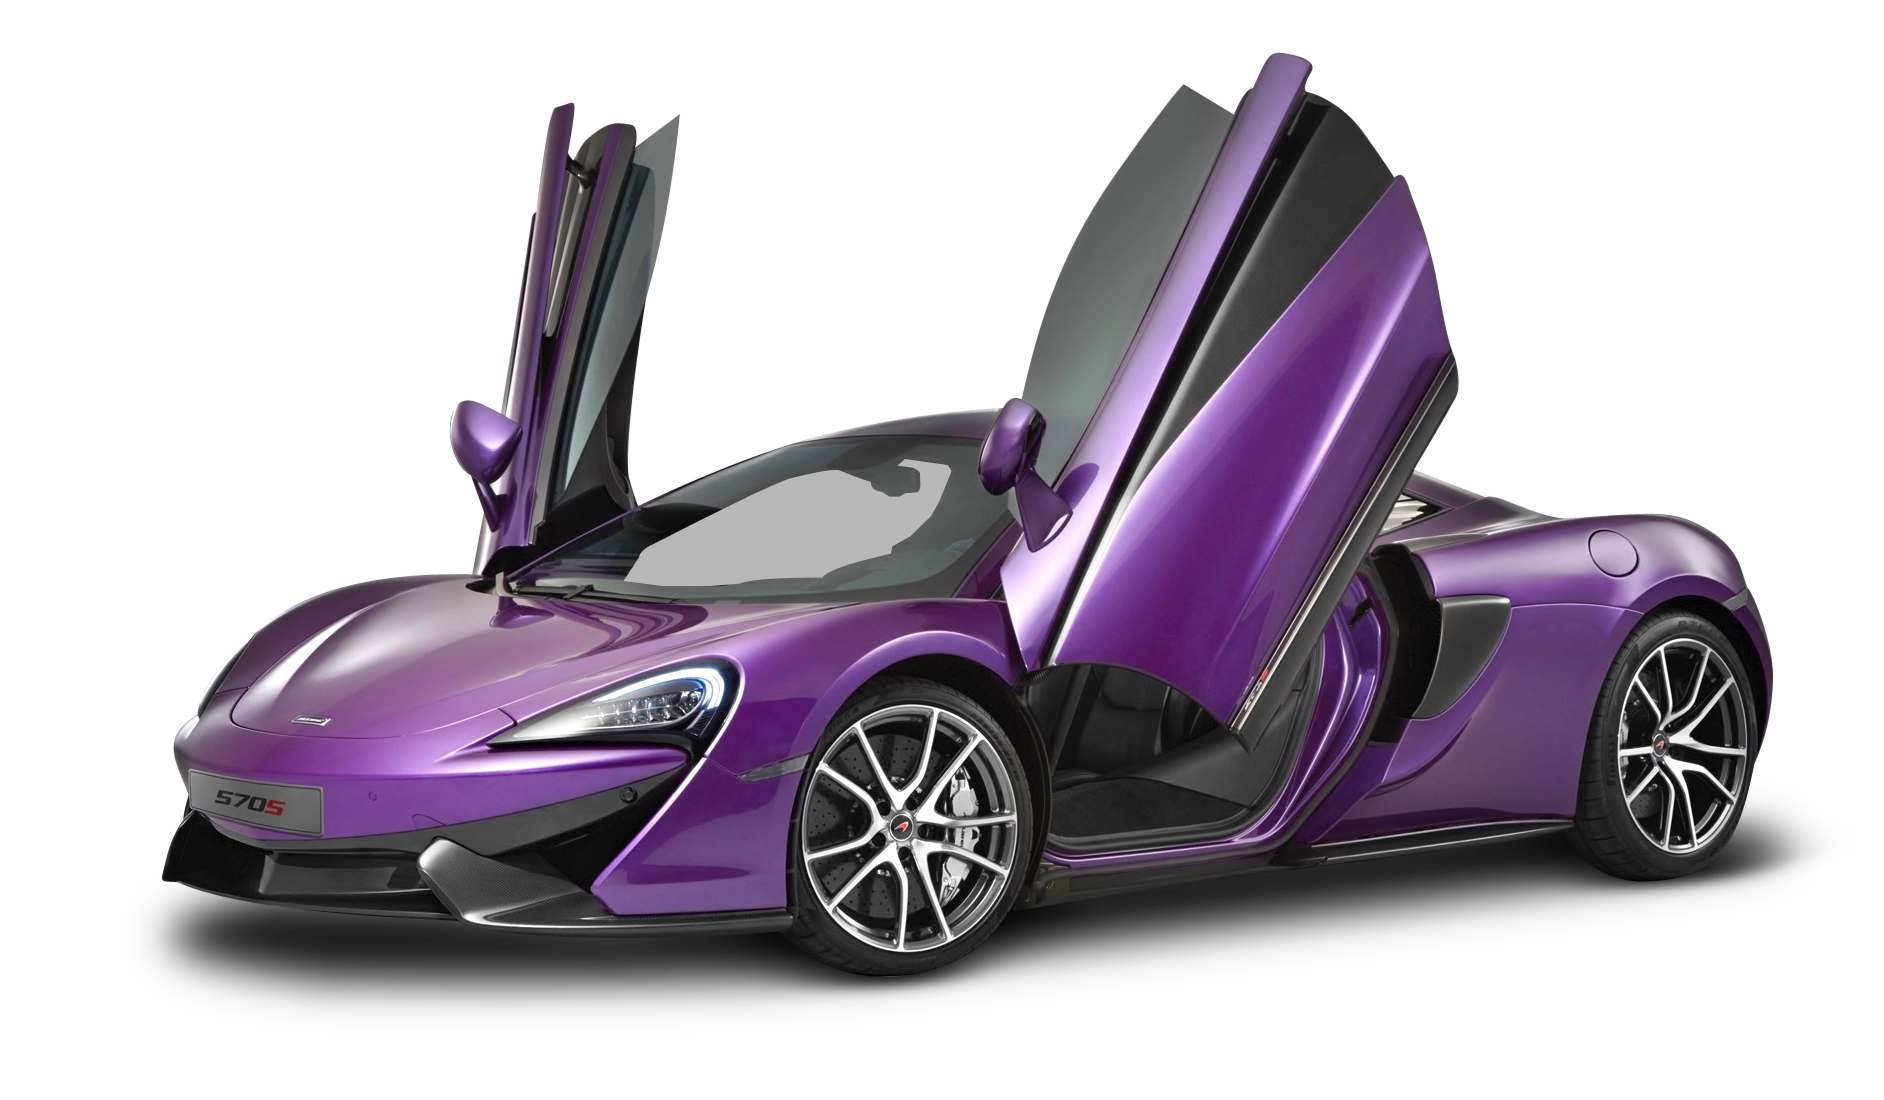 Car design clipart jpg transparent Purple Clipart Sports Car Free collection | Download and share ... jpg transparent